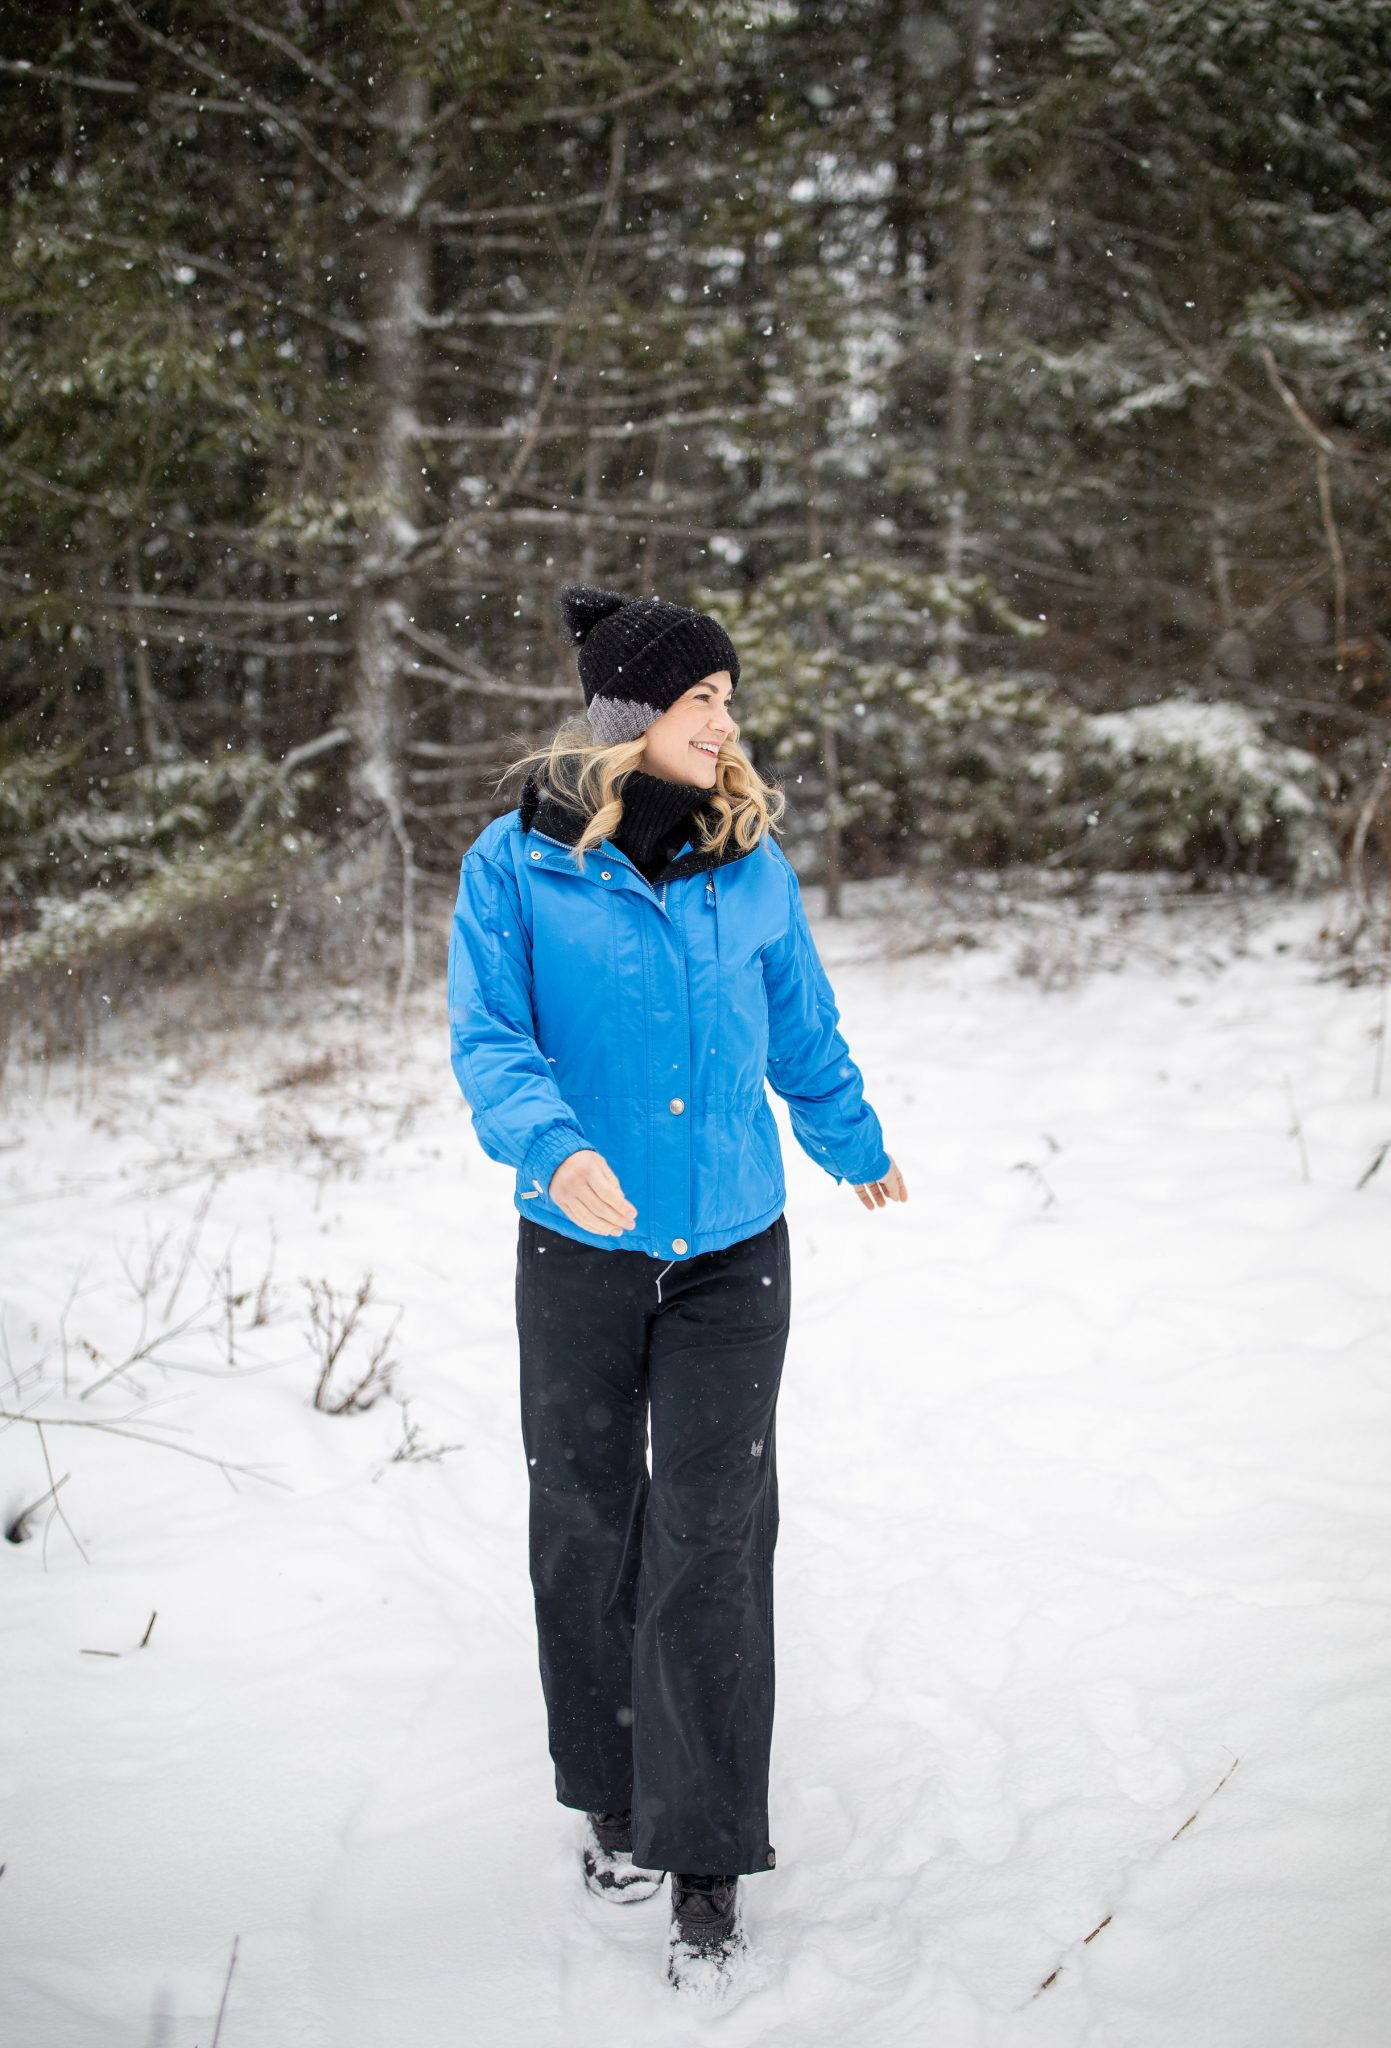 Ski Style by popular Seattle tall fashion blog, Whit Wanders: image of a woman standing outside in the snow and wearing a blue coat, black knit beanie, black rib knit turtleneck sweater, and black snow pants.